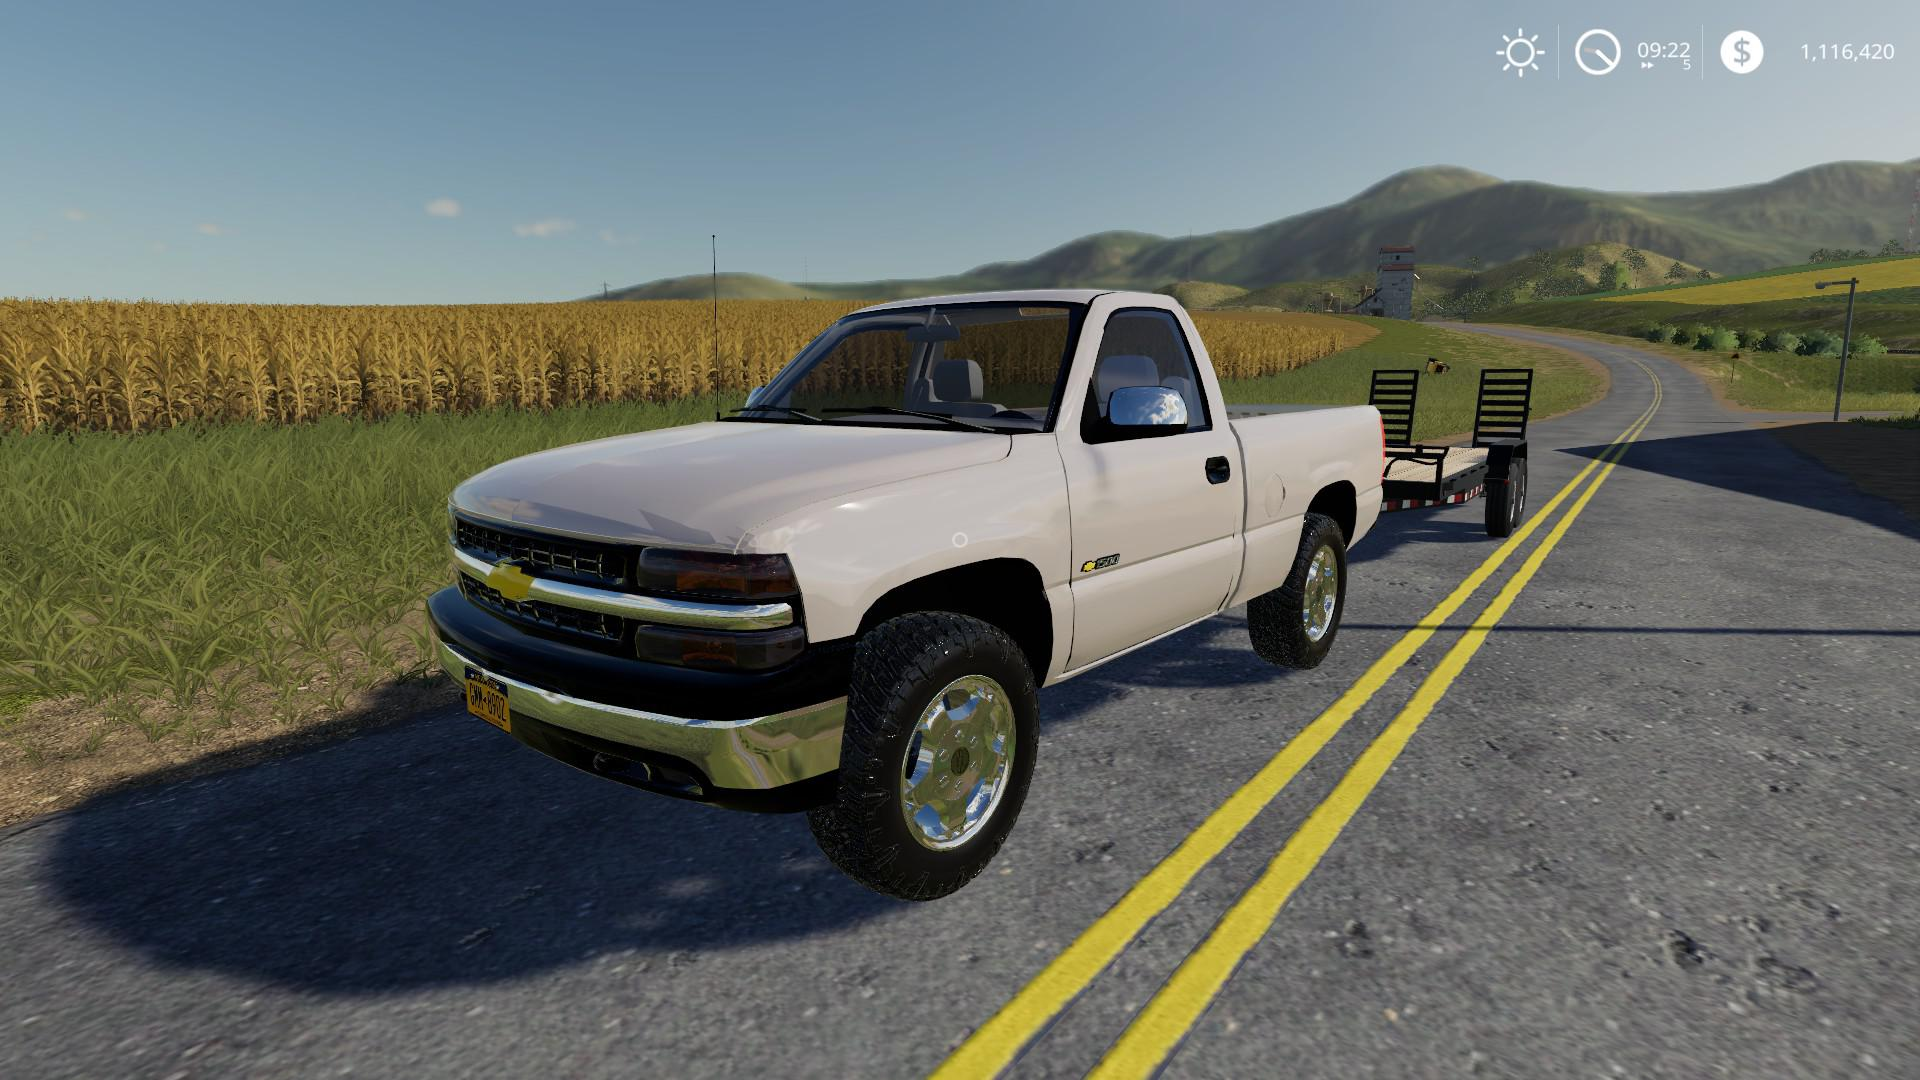 1999 Silverado 1500 Regular Cab v 1.0 | FS19 mods, Farming ...